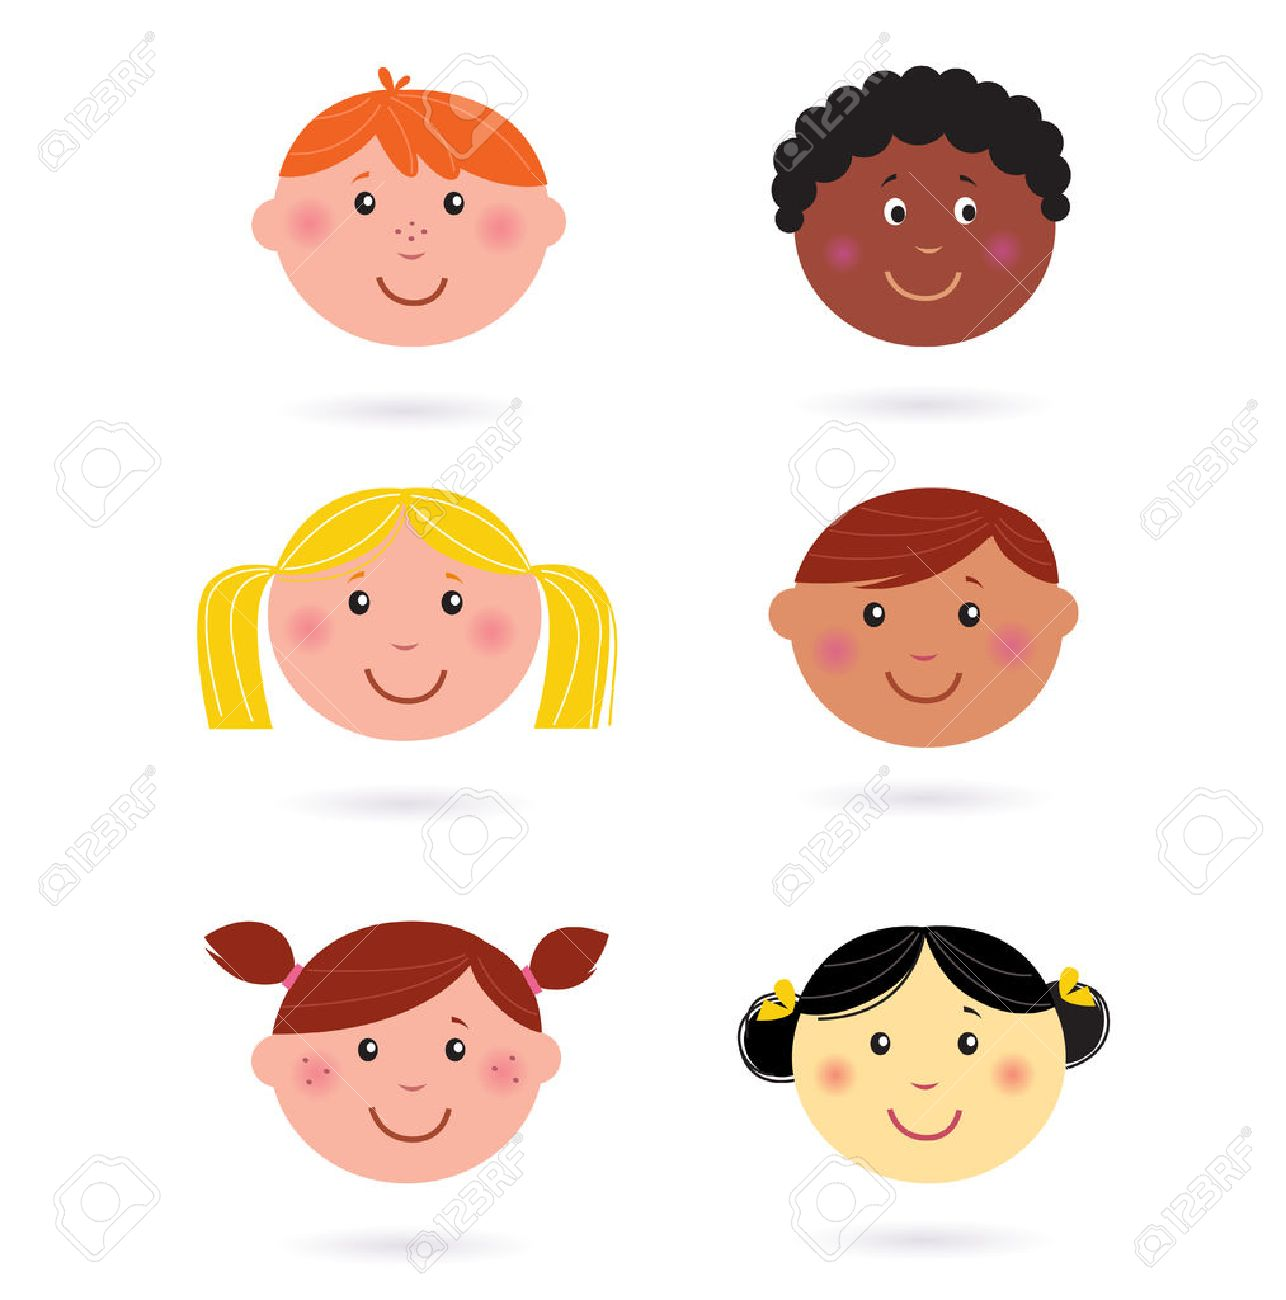 Cute multicultural children heads icons.